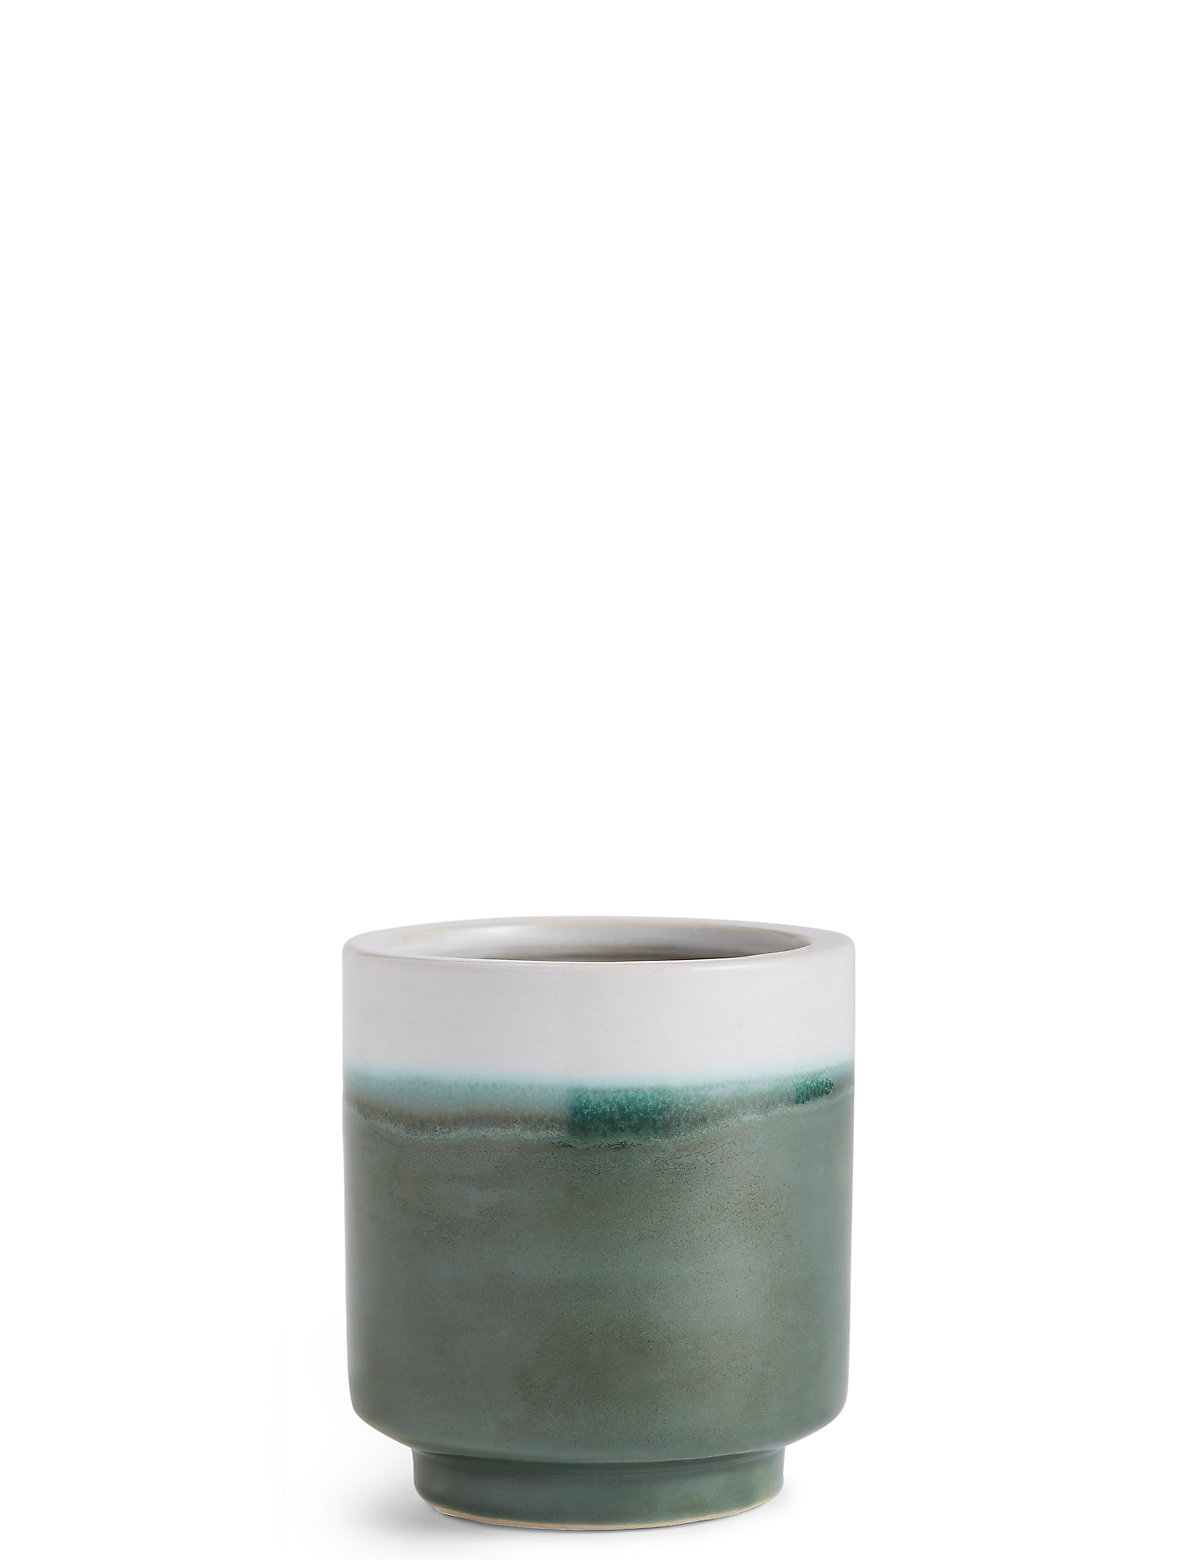 Image of 11cm Small Green Reactive Planter